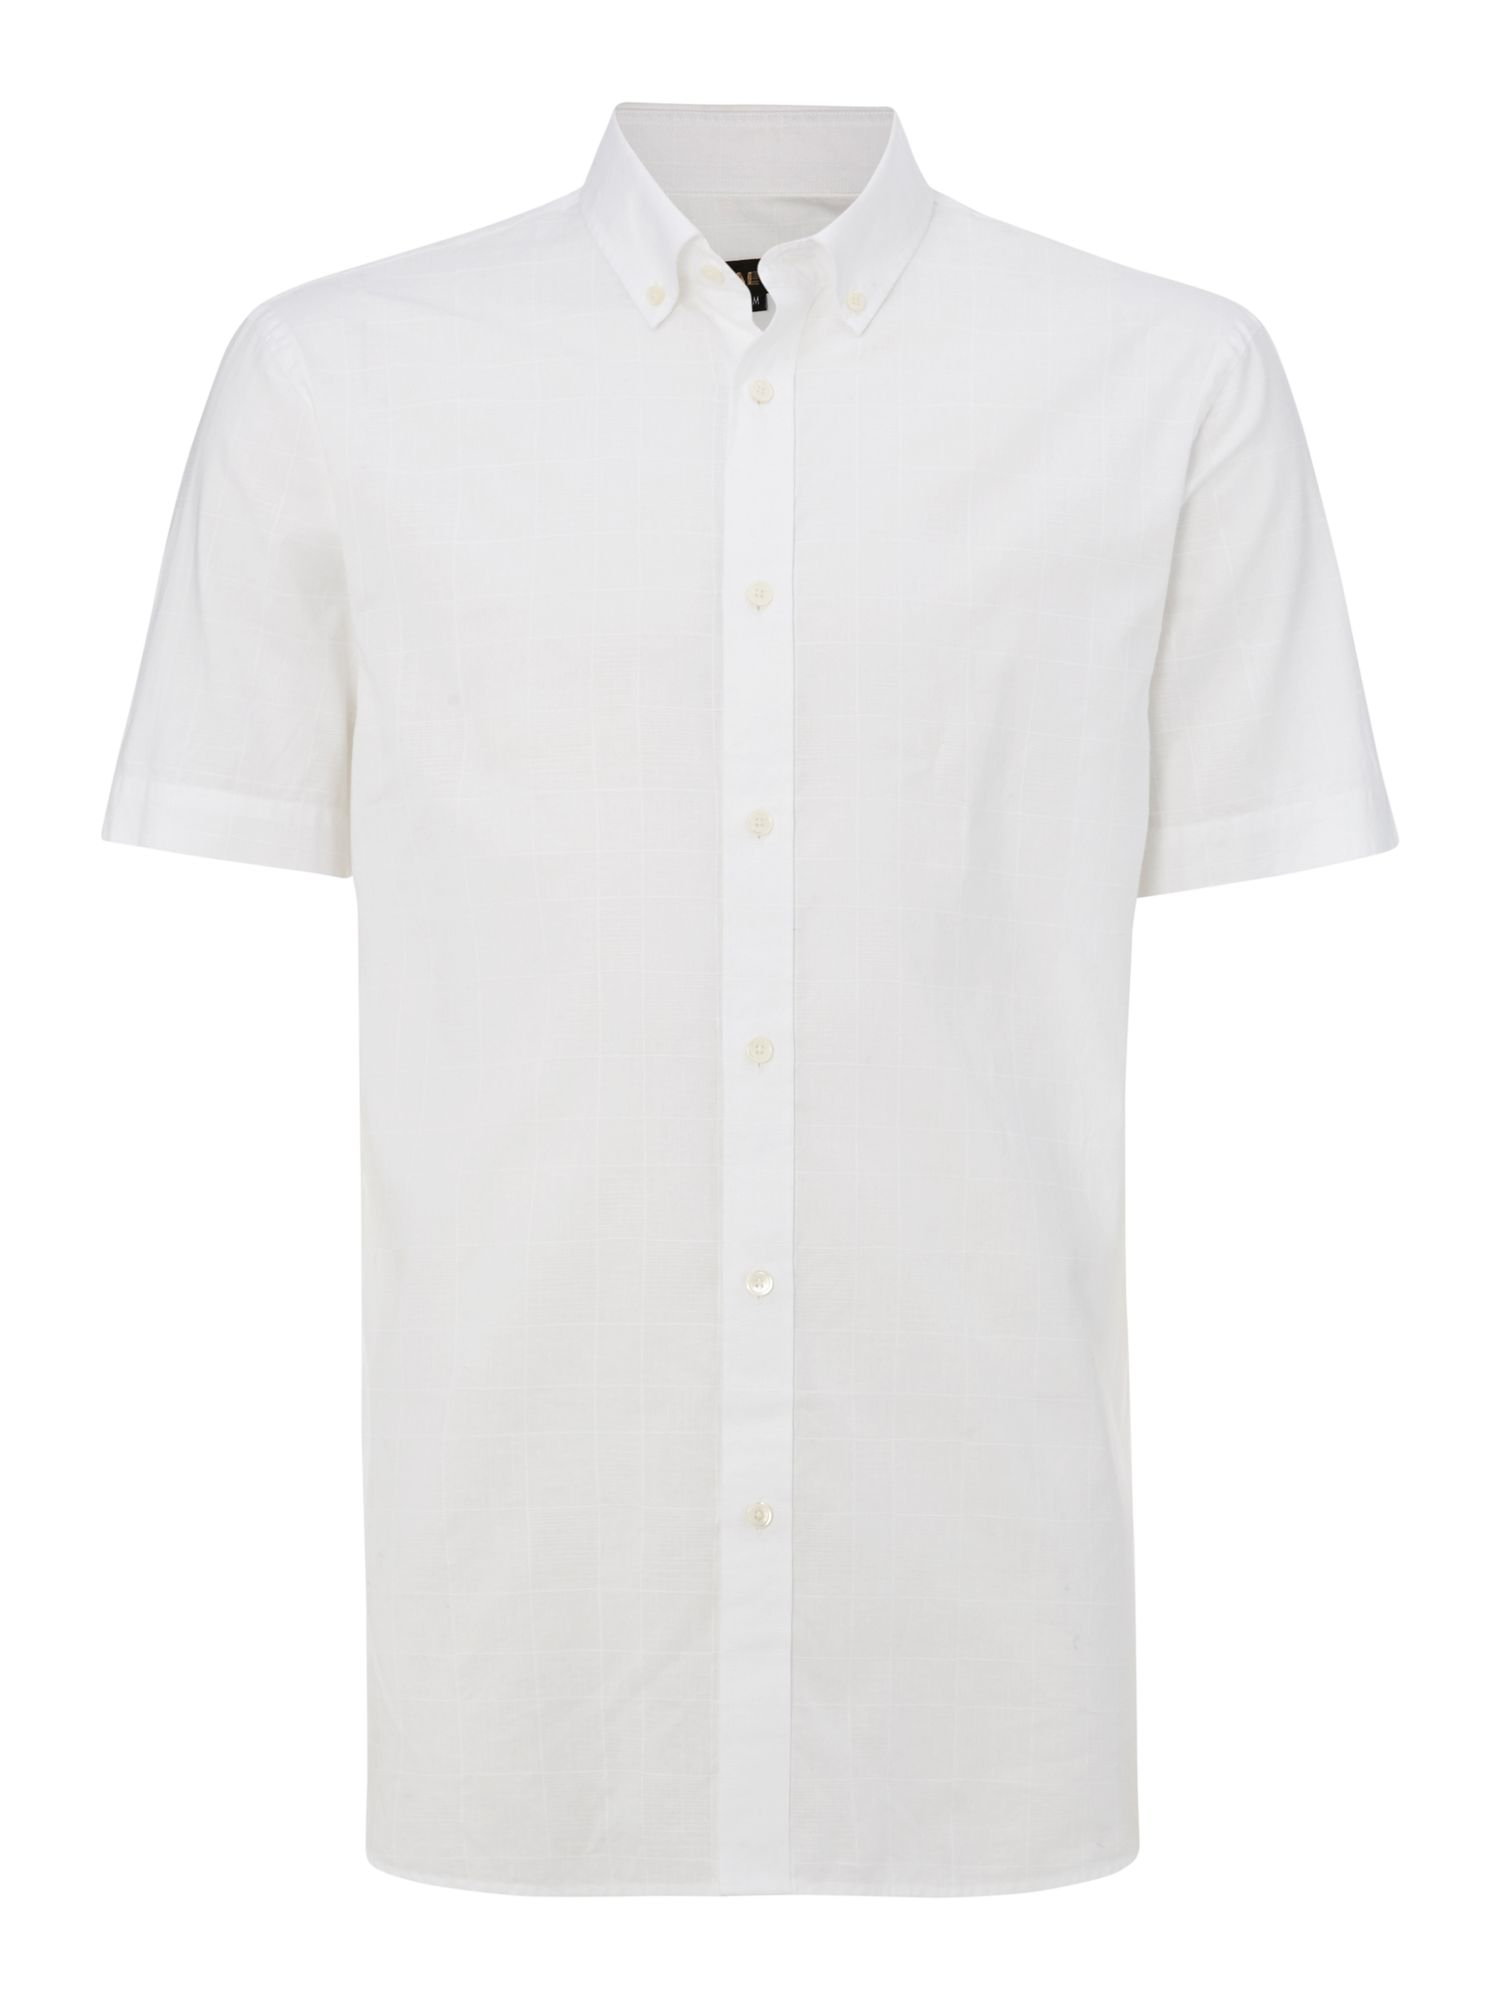 Dobby short sleeve classic collar shirt